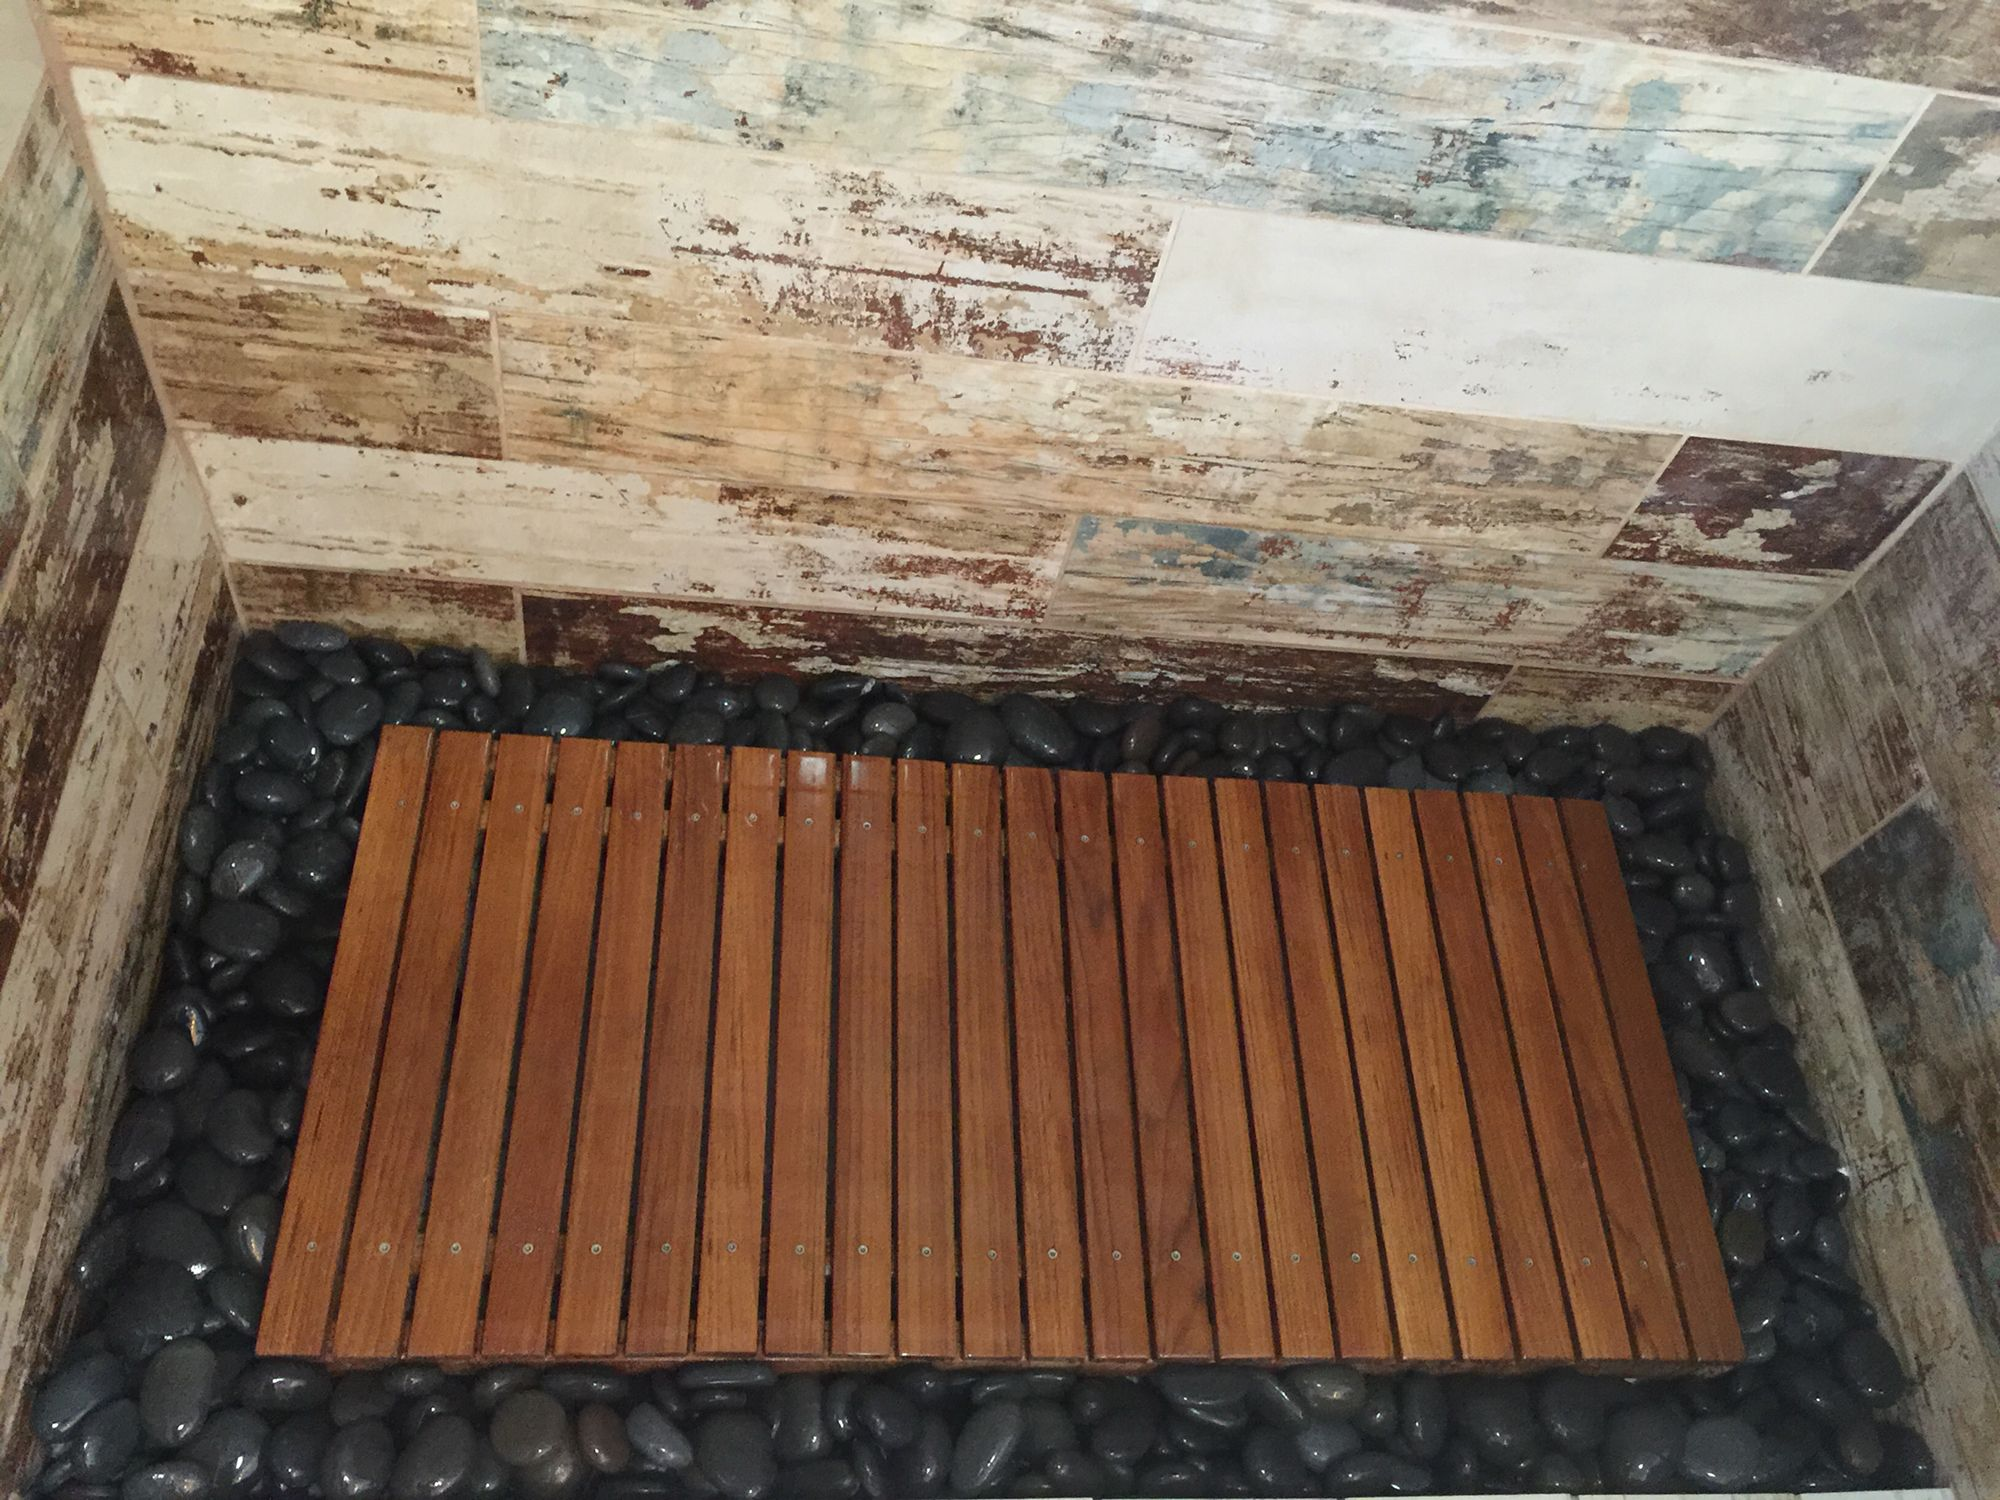 Teak Wood Shower Floor Surrounded By River Rock Walls Tiles In Ceramic Bar Wood Tile Designed By Krysten Pet